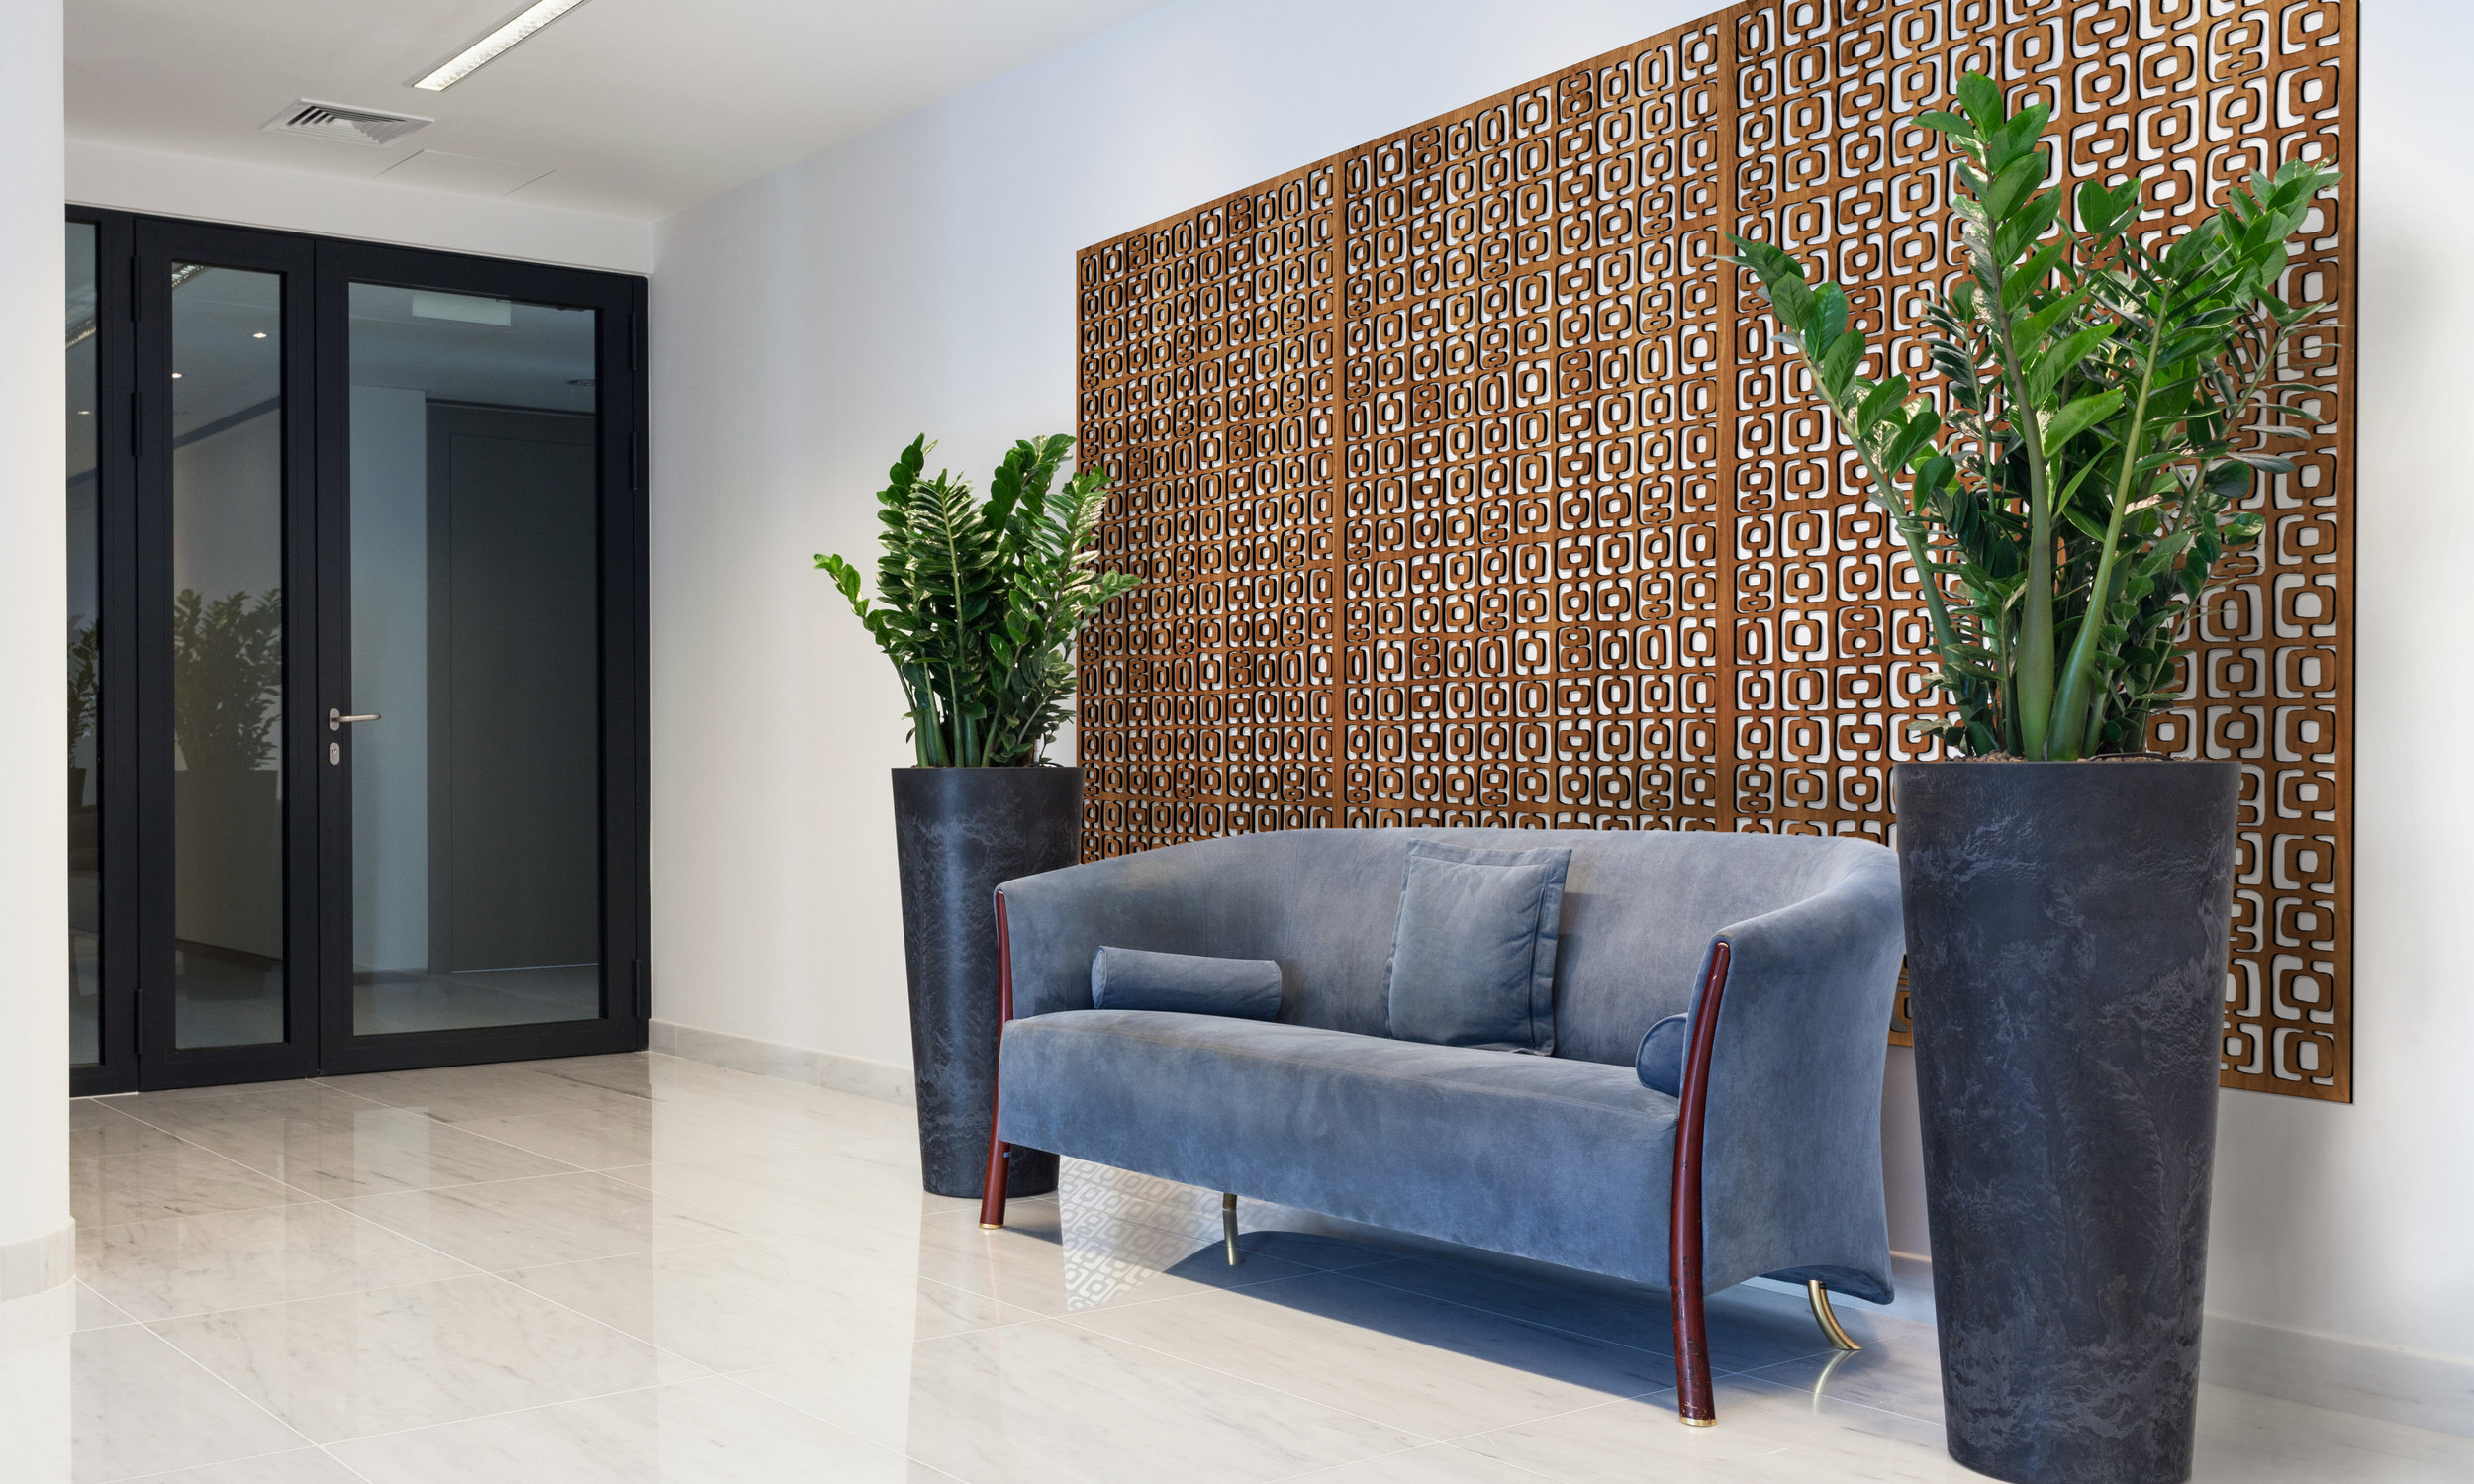 Installation Rendering A   Dallago decorative office wall panel - shown in Cherry